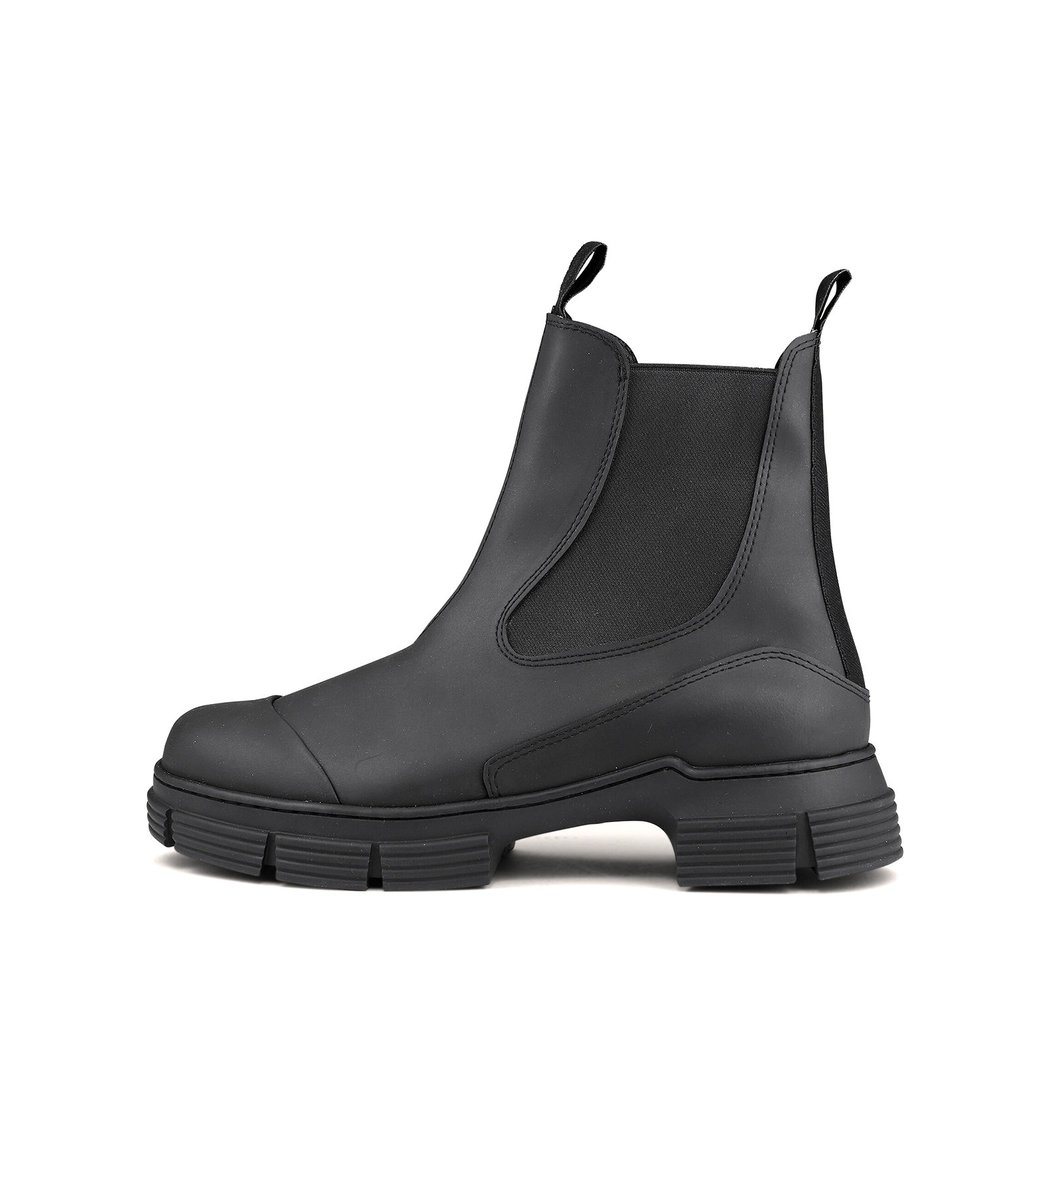 Ganni Recycled Rubber Boot in Black